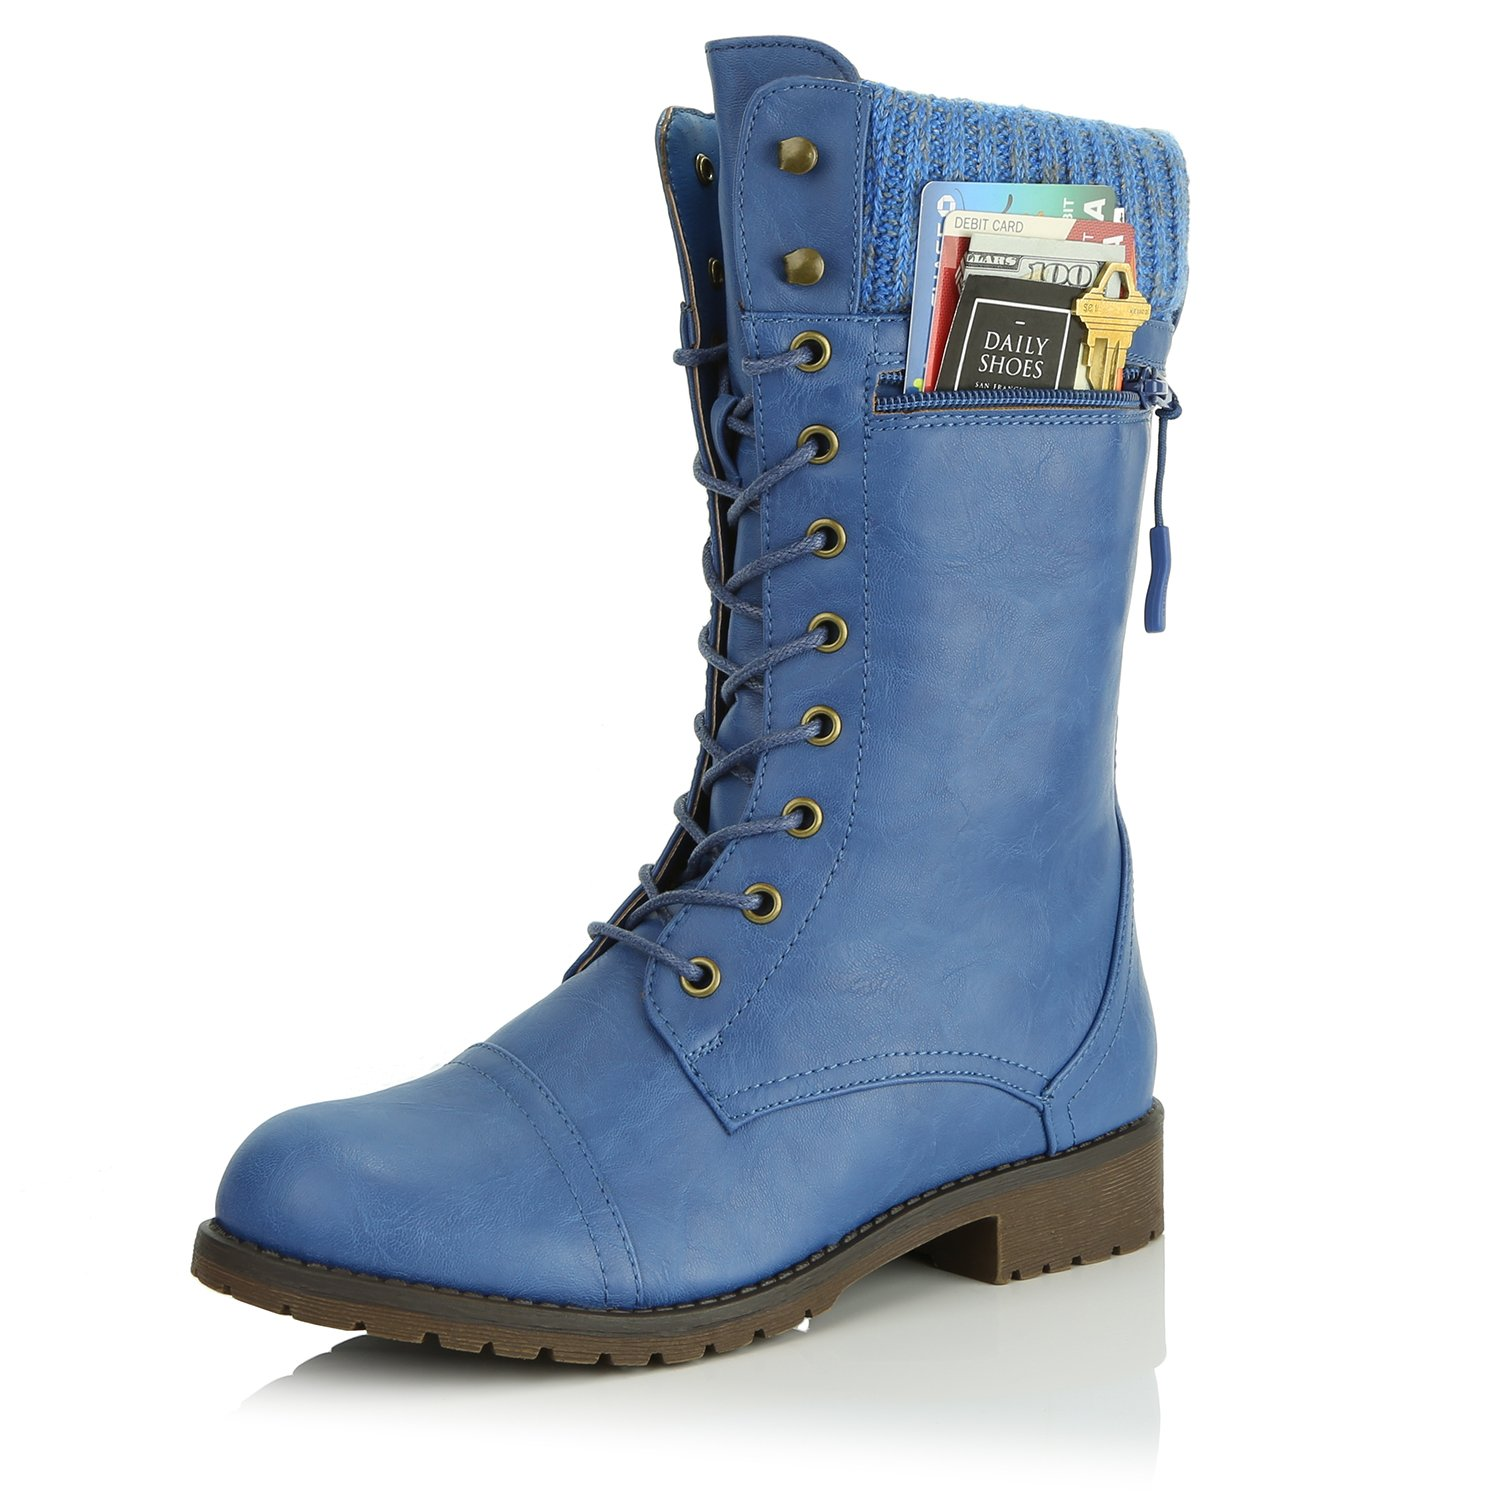 DailyShoes Women's Combat Style Lace up Ankle Bootie Round Toe Military Knit Credit Card Knife Money Wallet Pocket Boots, Blue Pu, 8.5